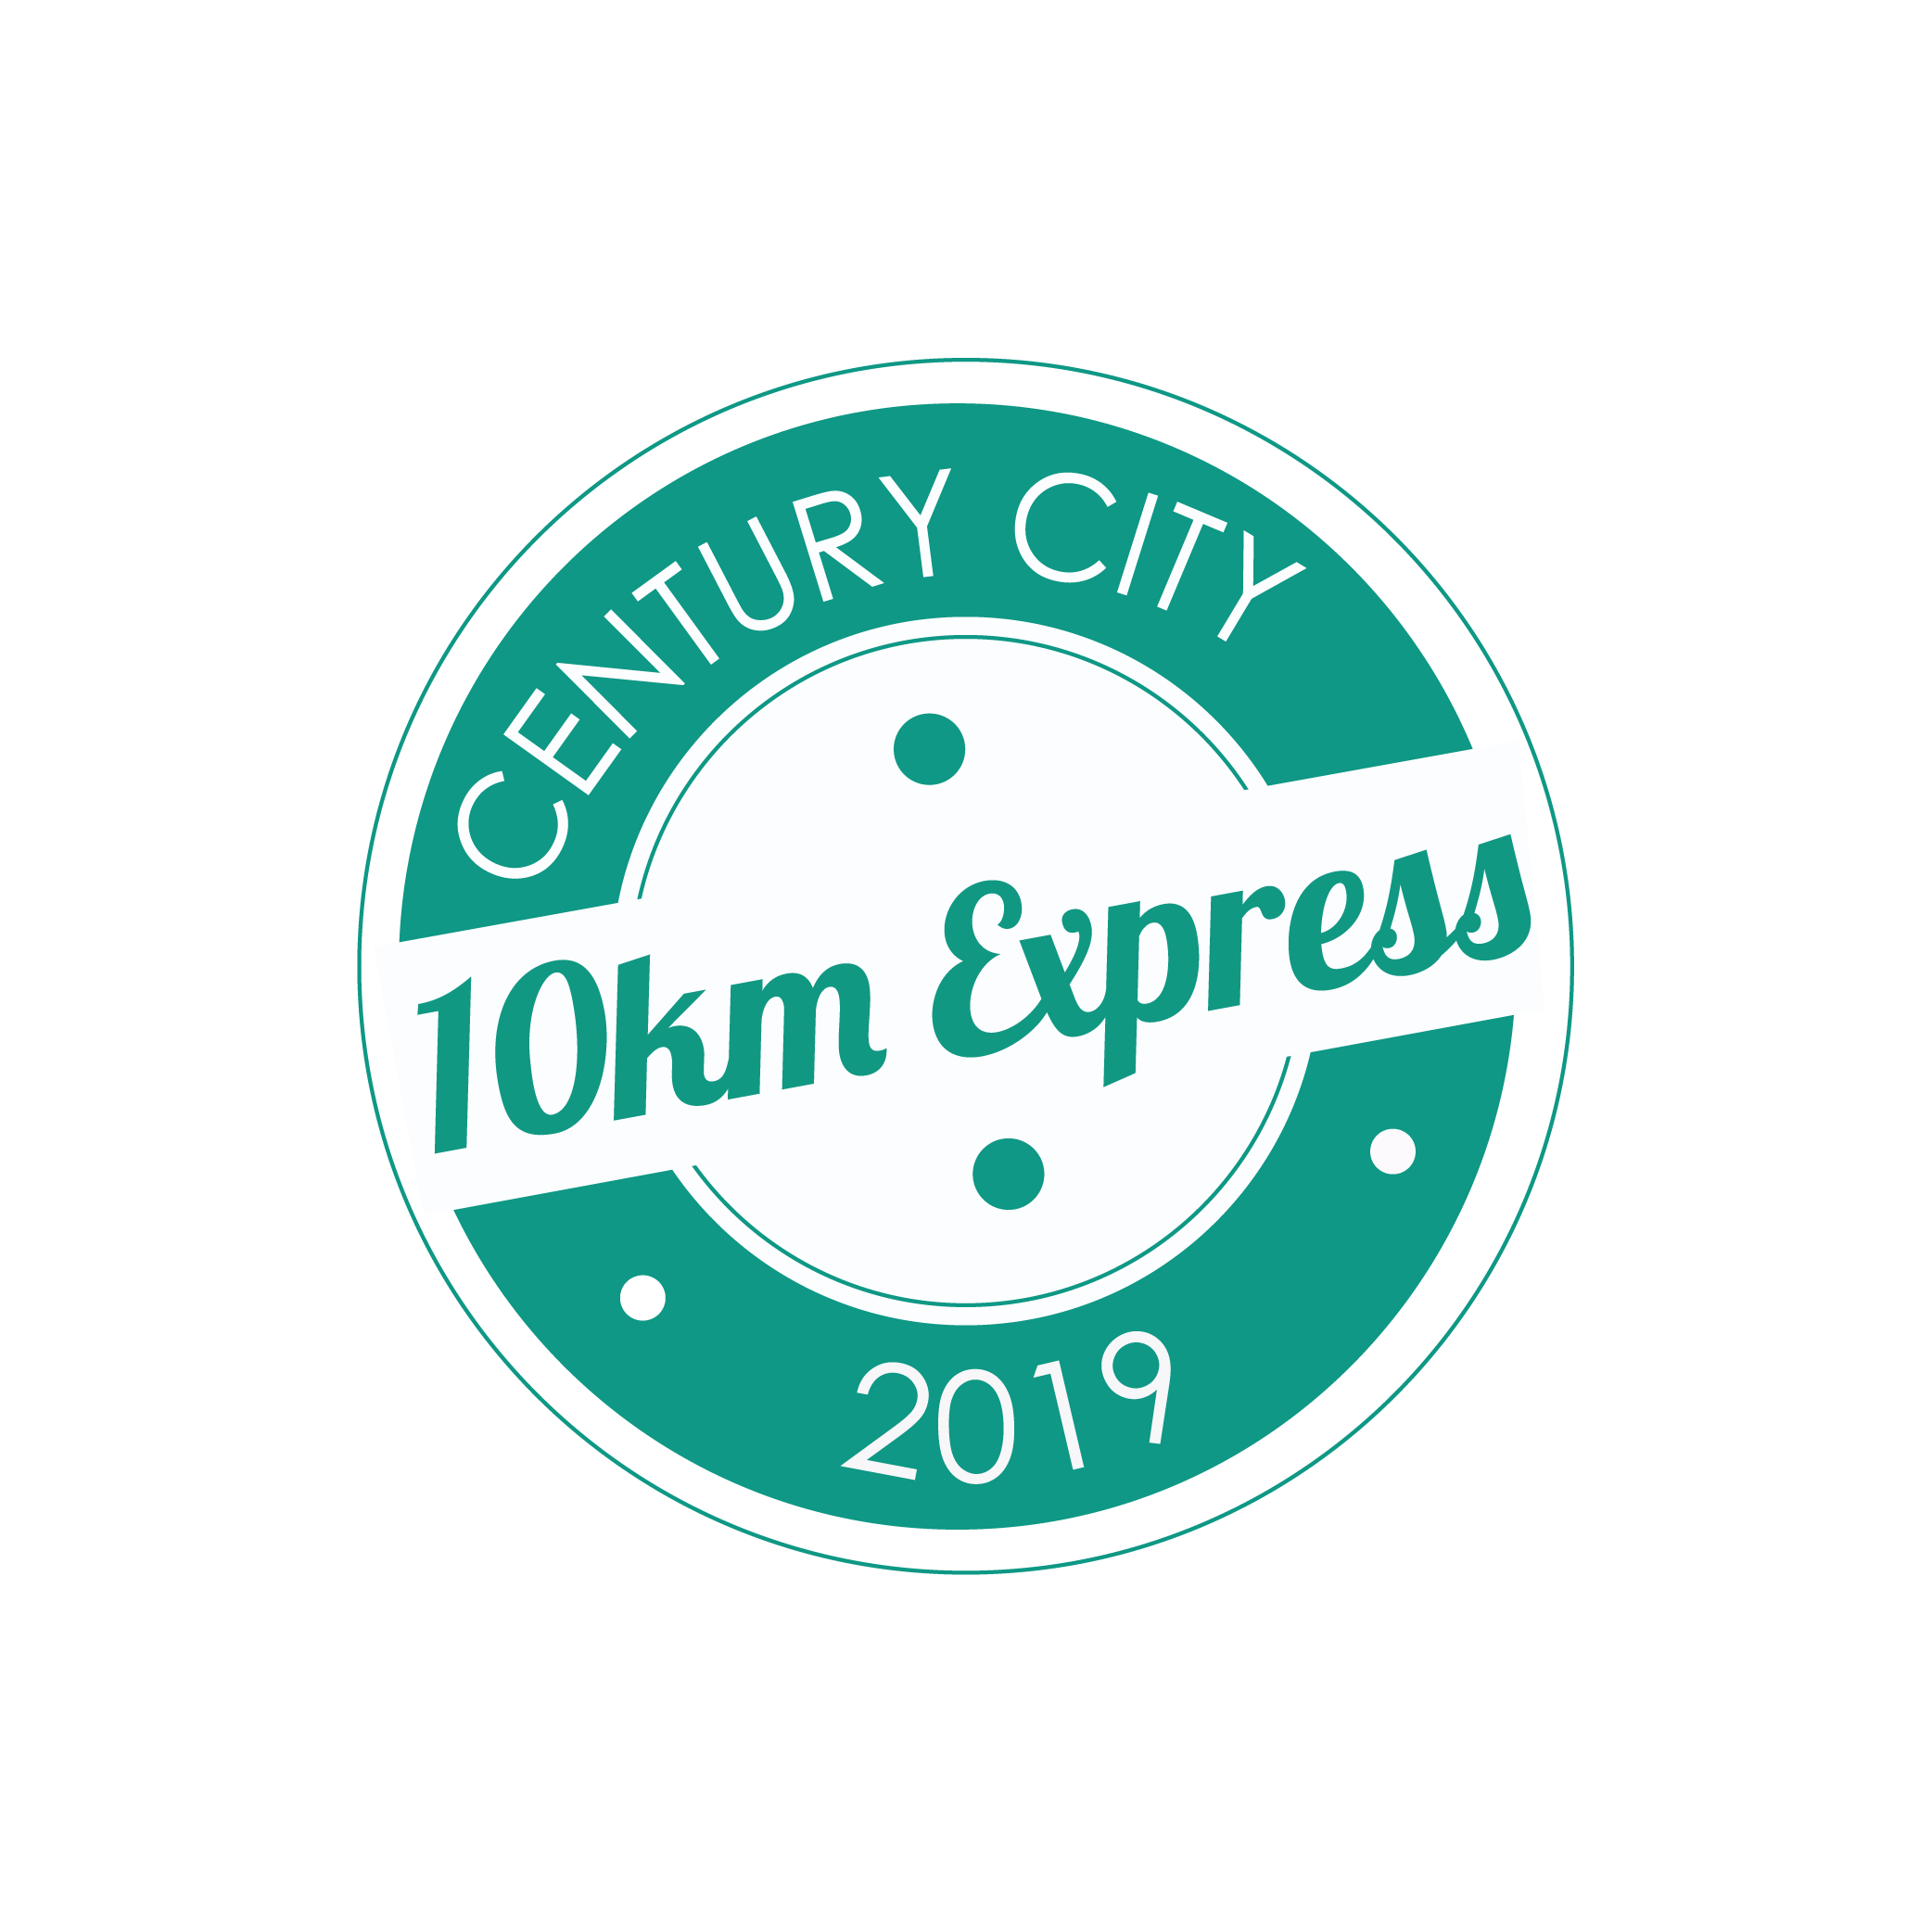 10km Express run